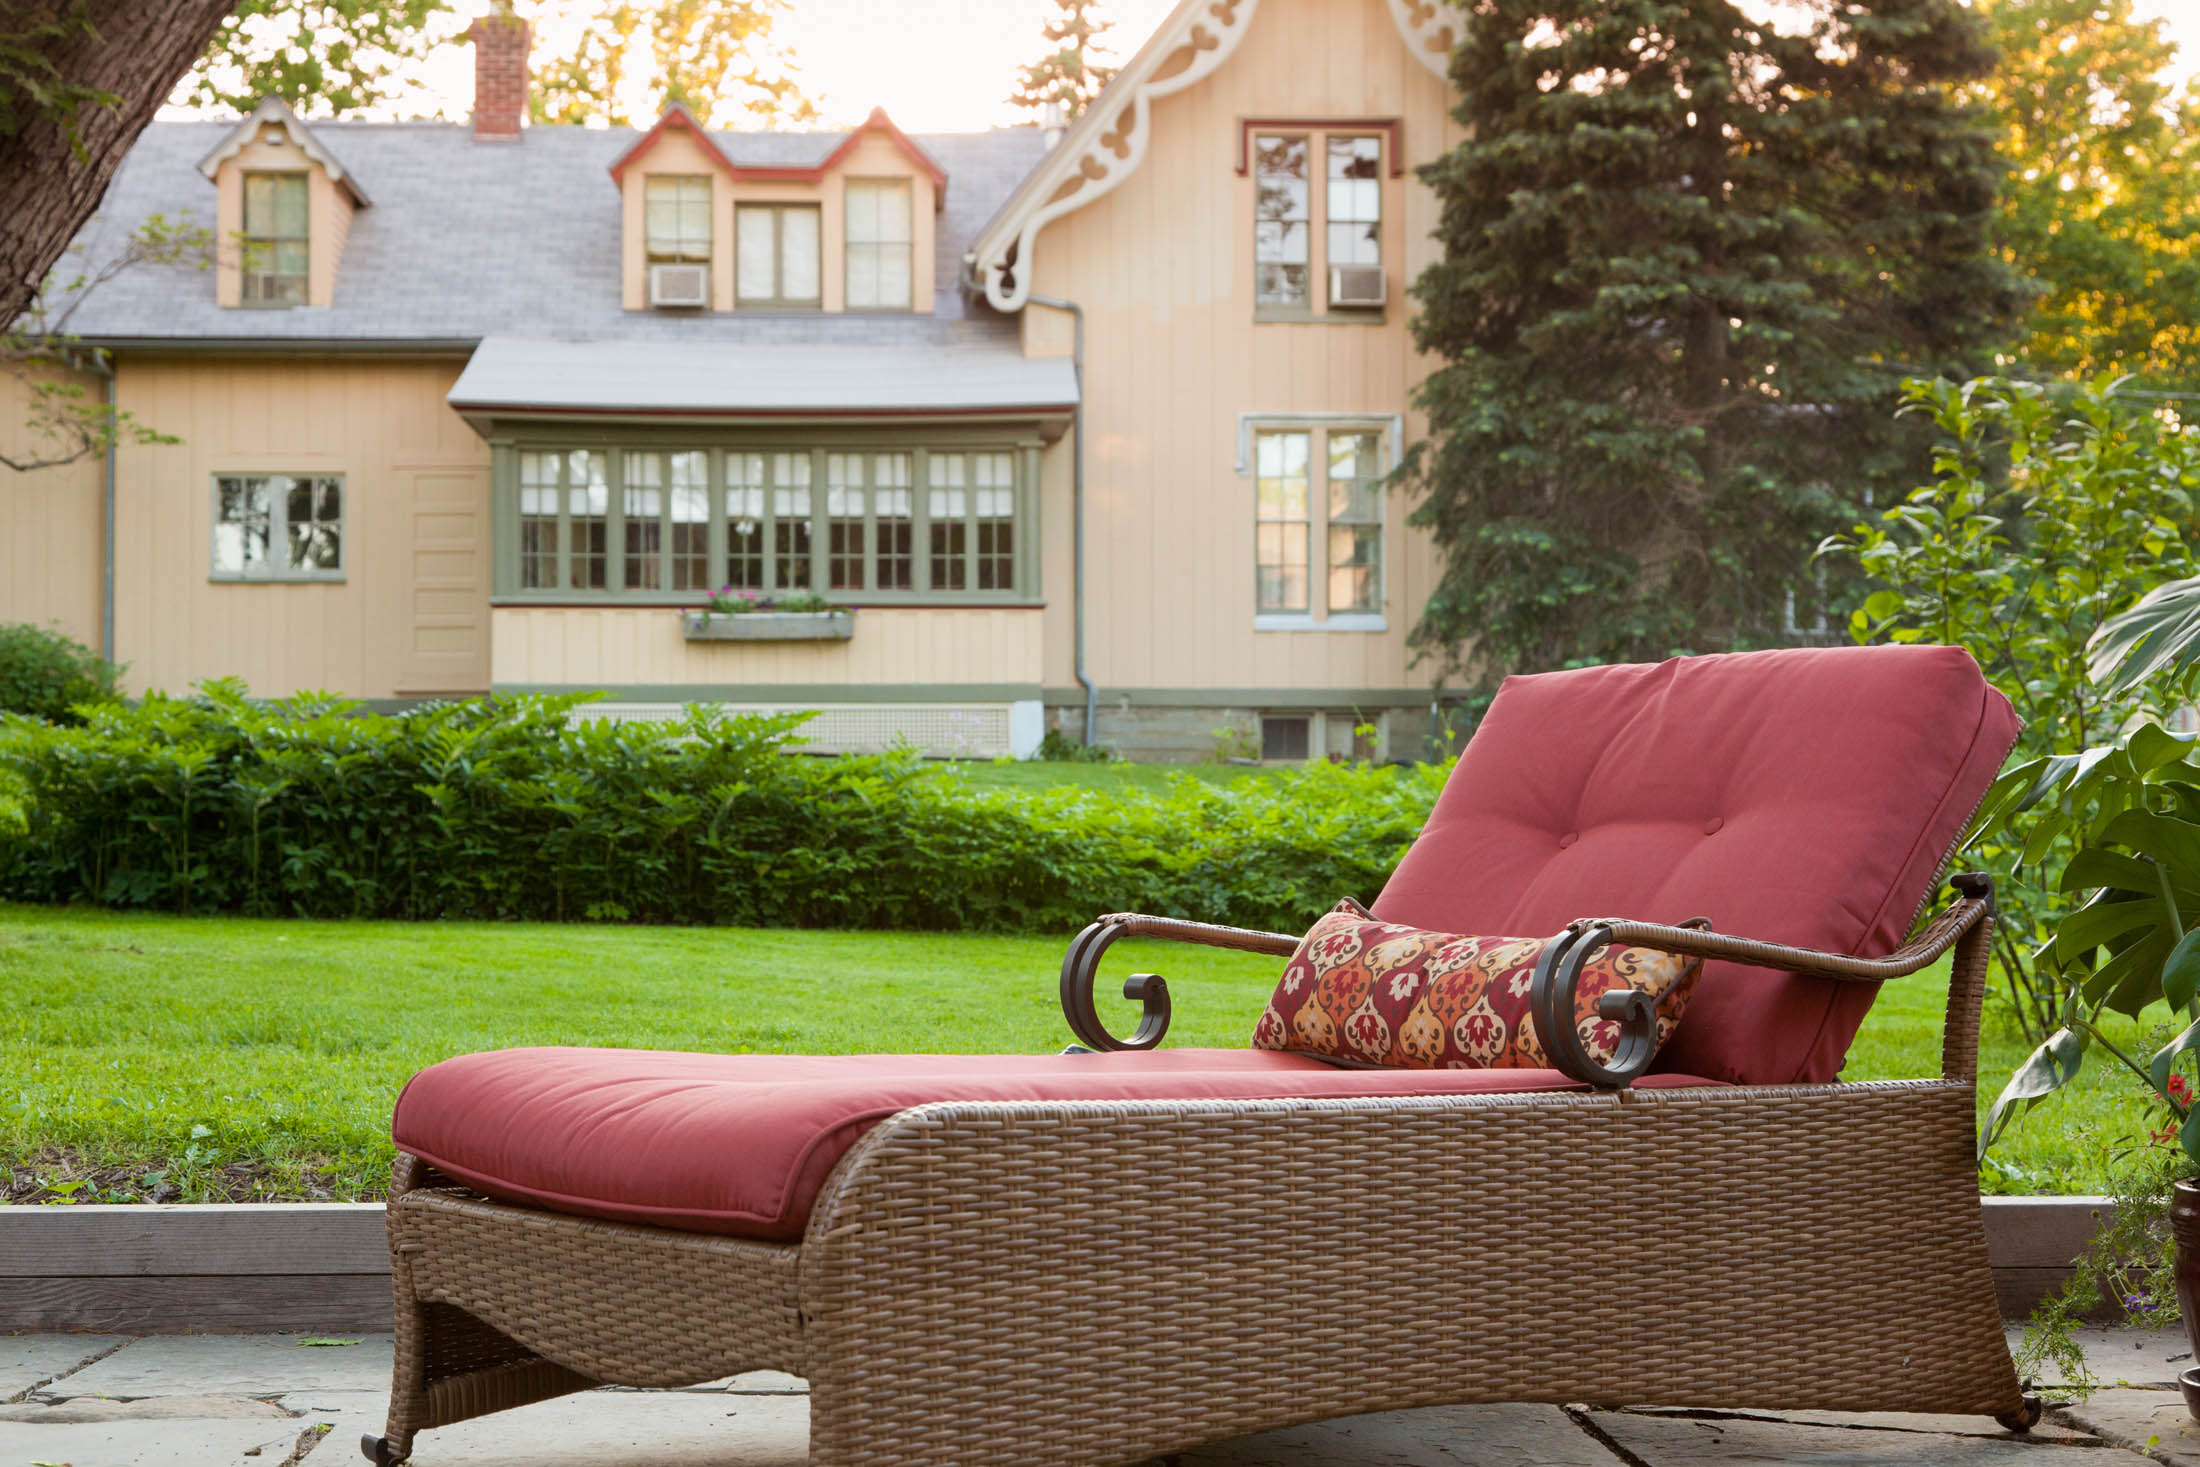 Chaise lounger on patio